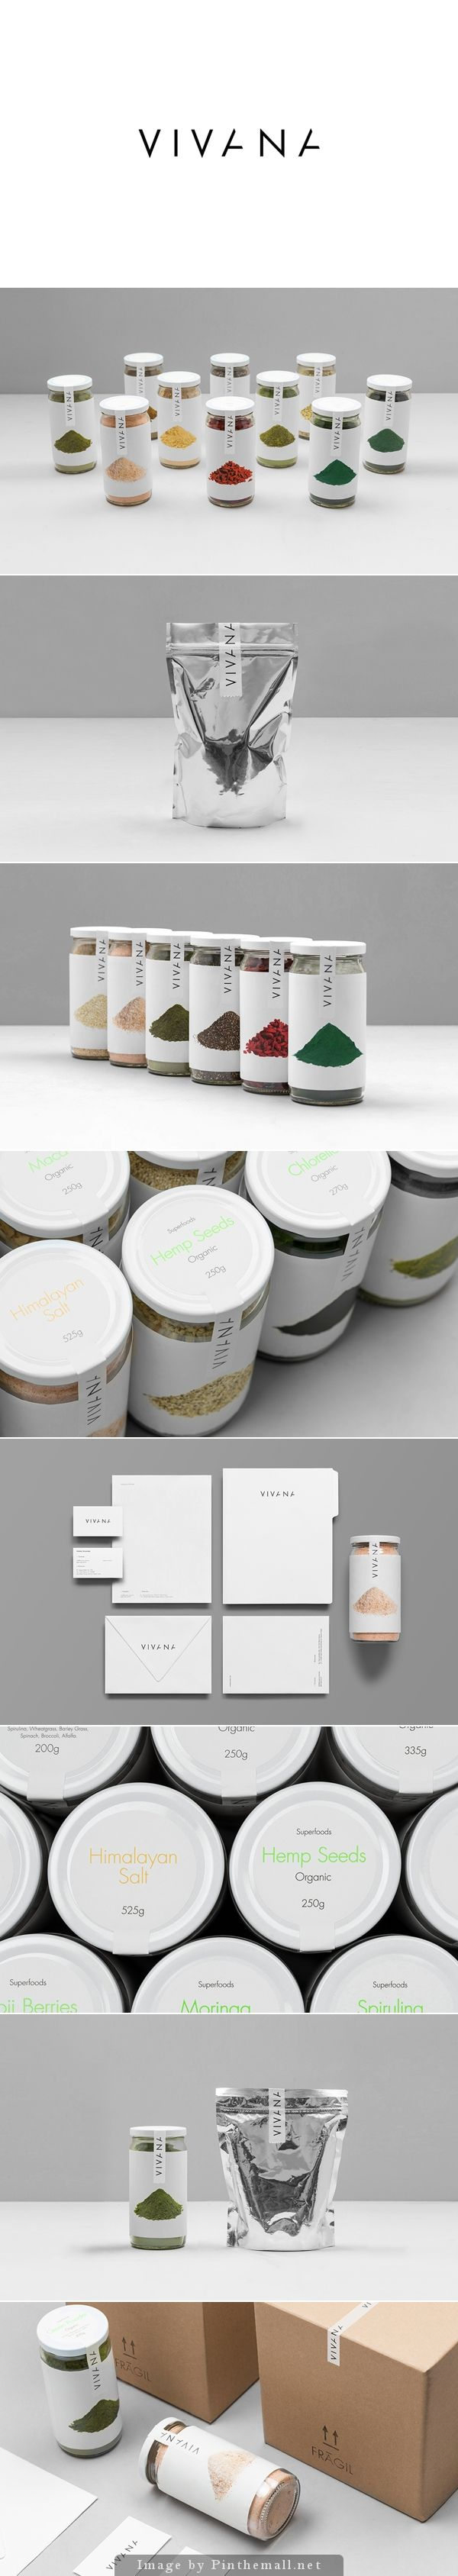 Vivana beautiful nutritional food products #packaging PD - created via https://www.behance.net/gallery/VIVANA/16289477?utm_source=Triggermail&utm_medium=email&utm_campaign=Net%20Project%20Published